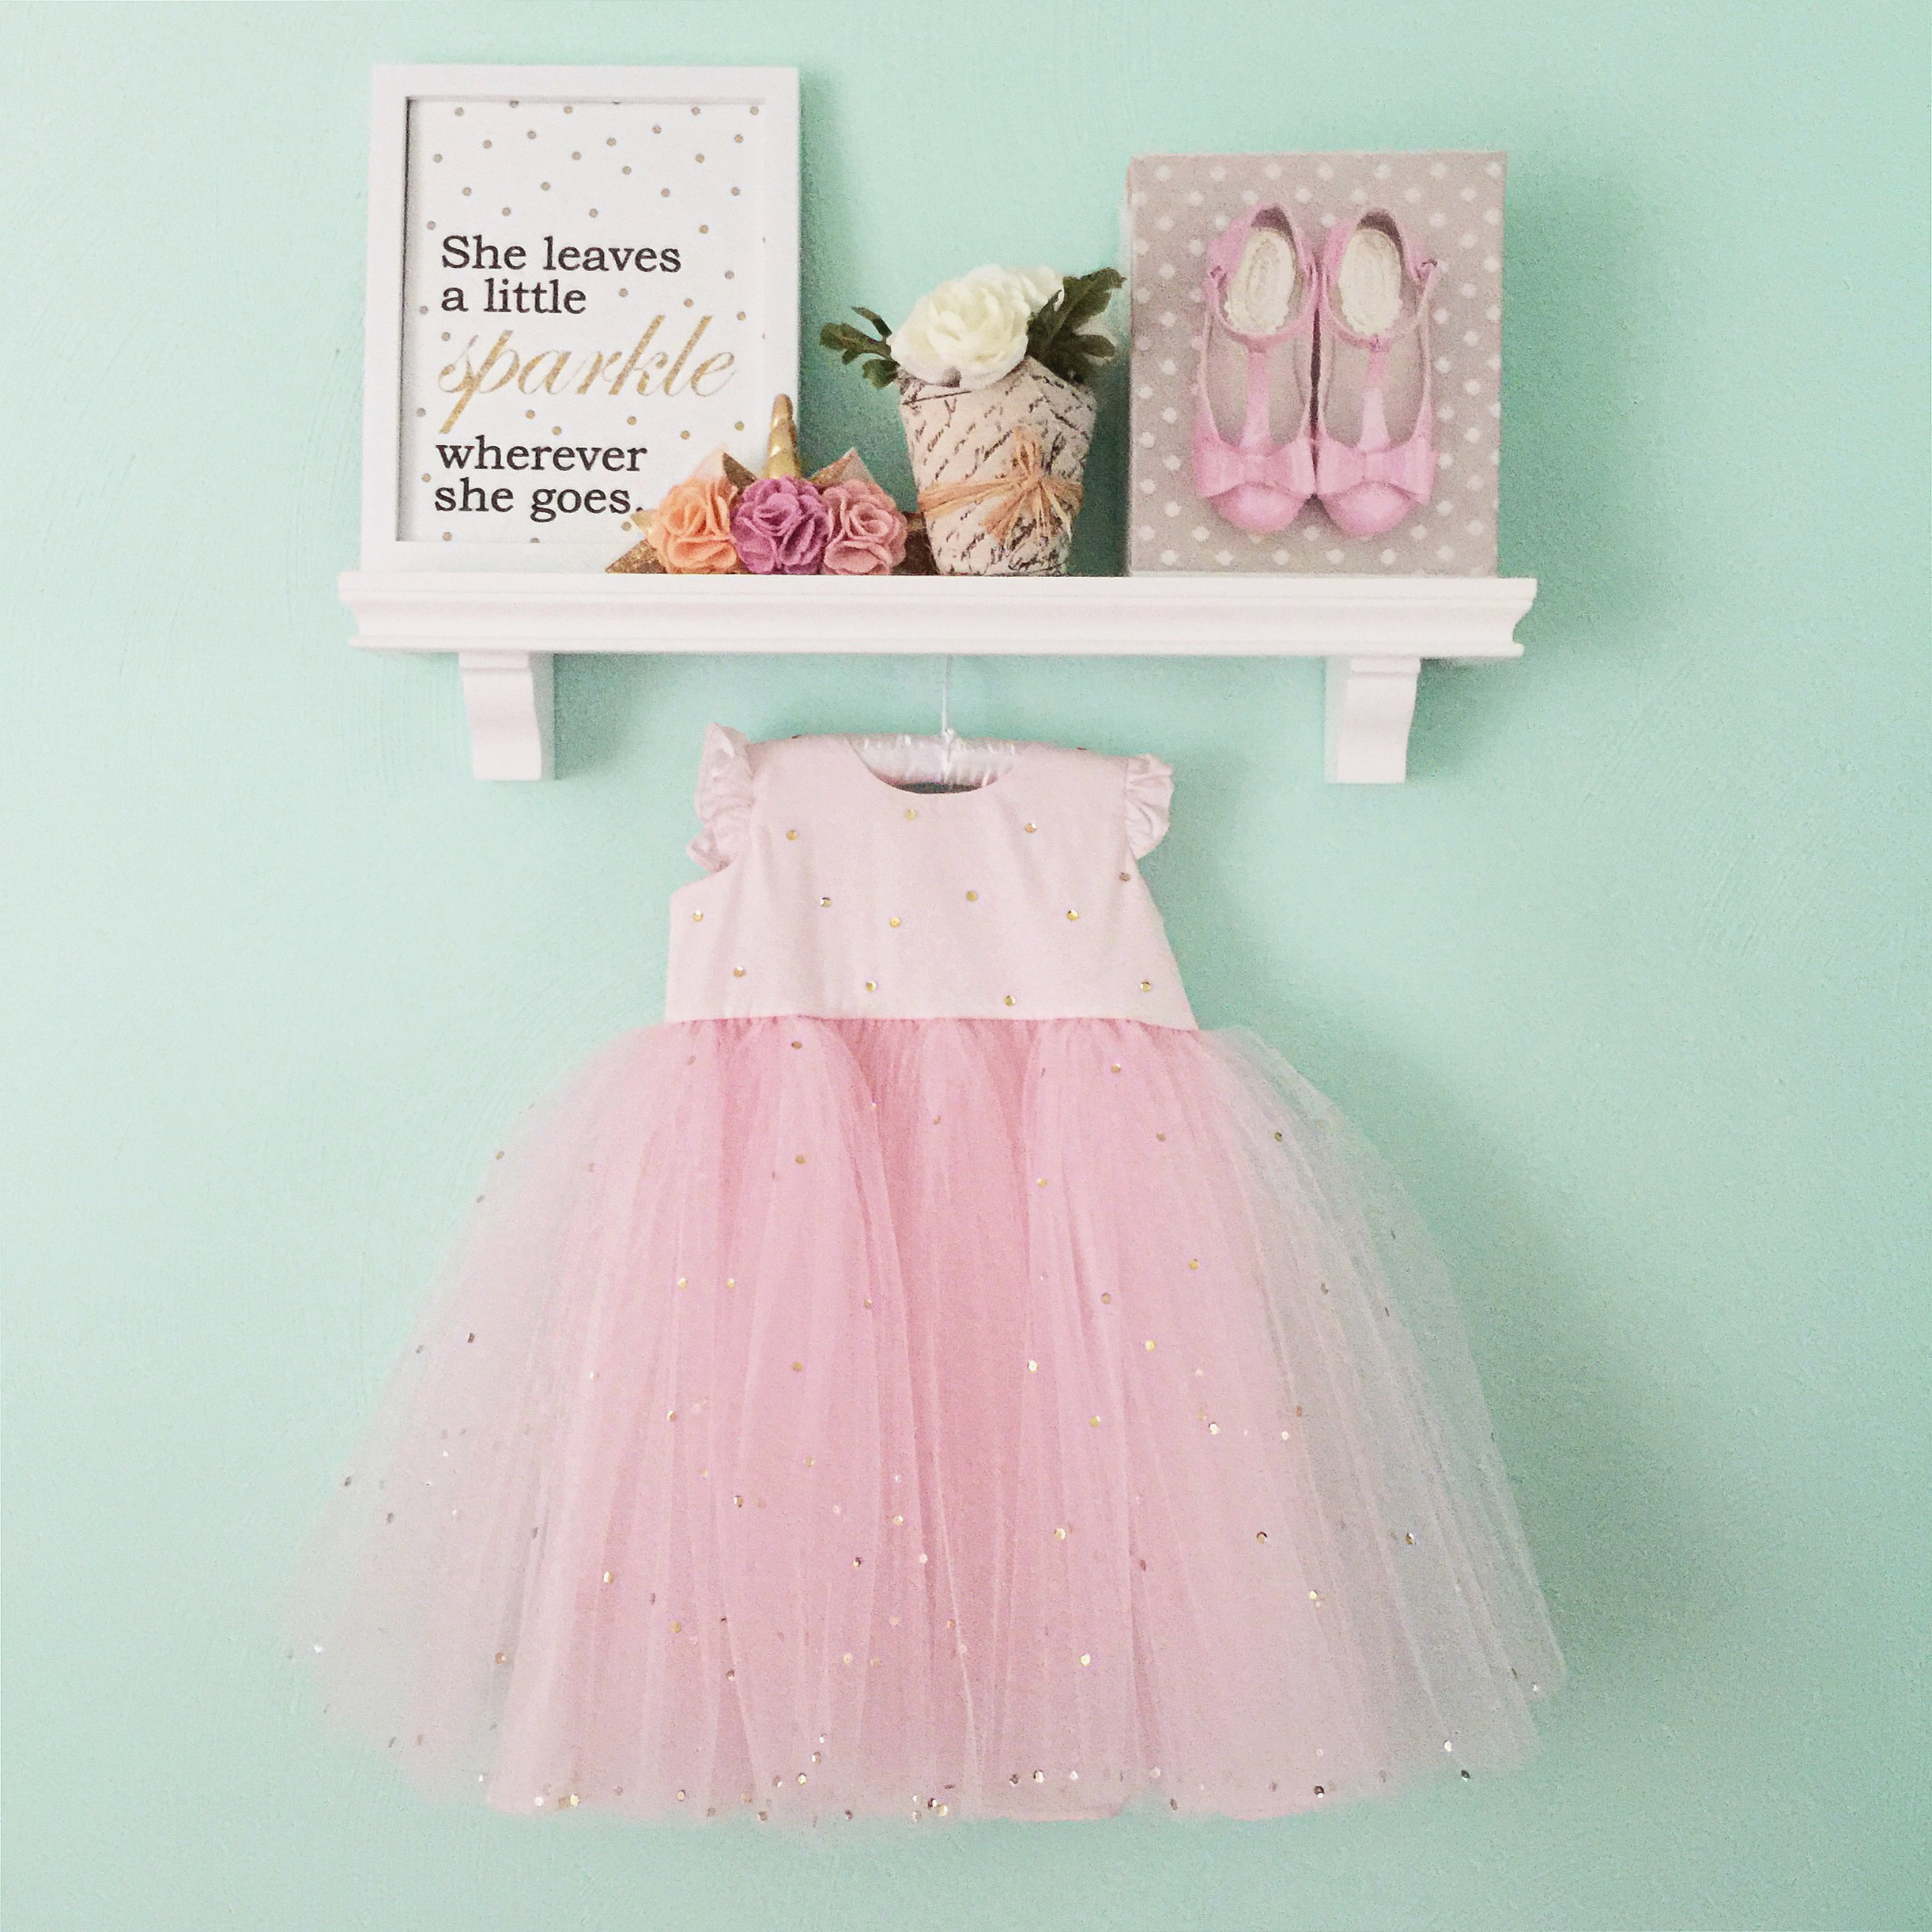 custom pink tulle flower girl or birthday party dress from cuteheads // order your own at cuteheads.com